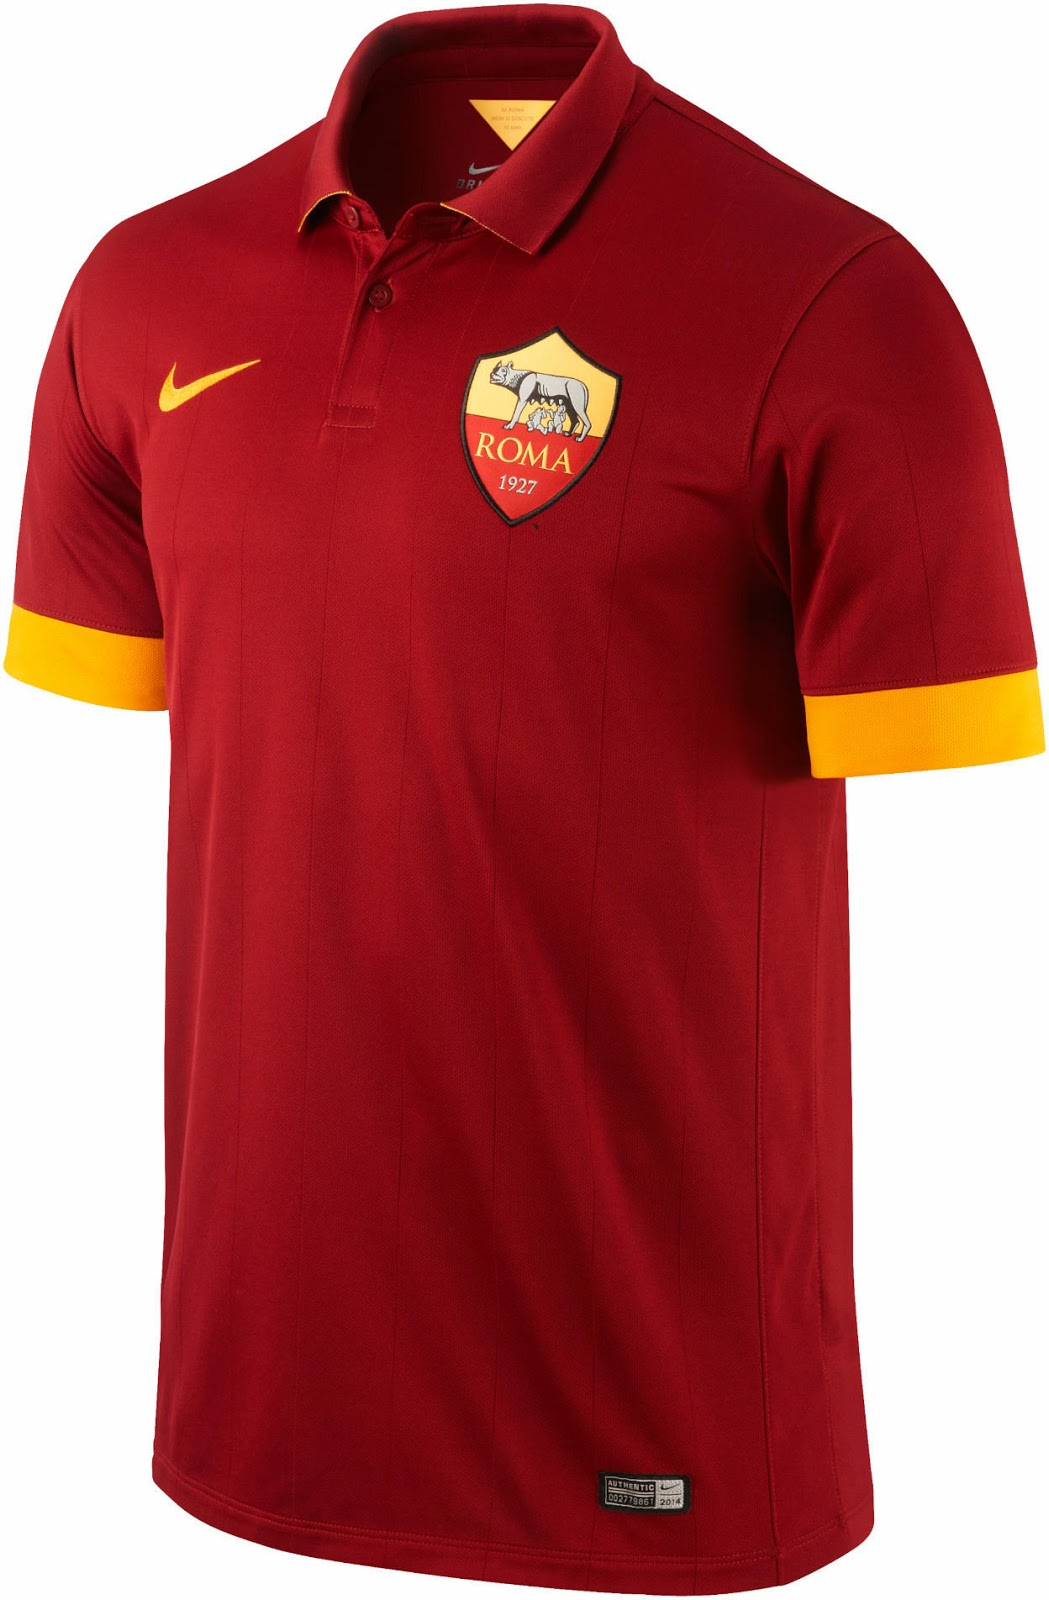 AS+Roma+14-15+Home+Kit+%281%29.jpg